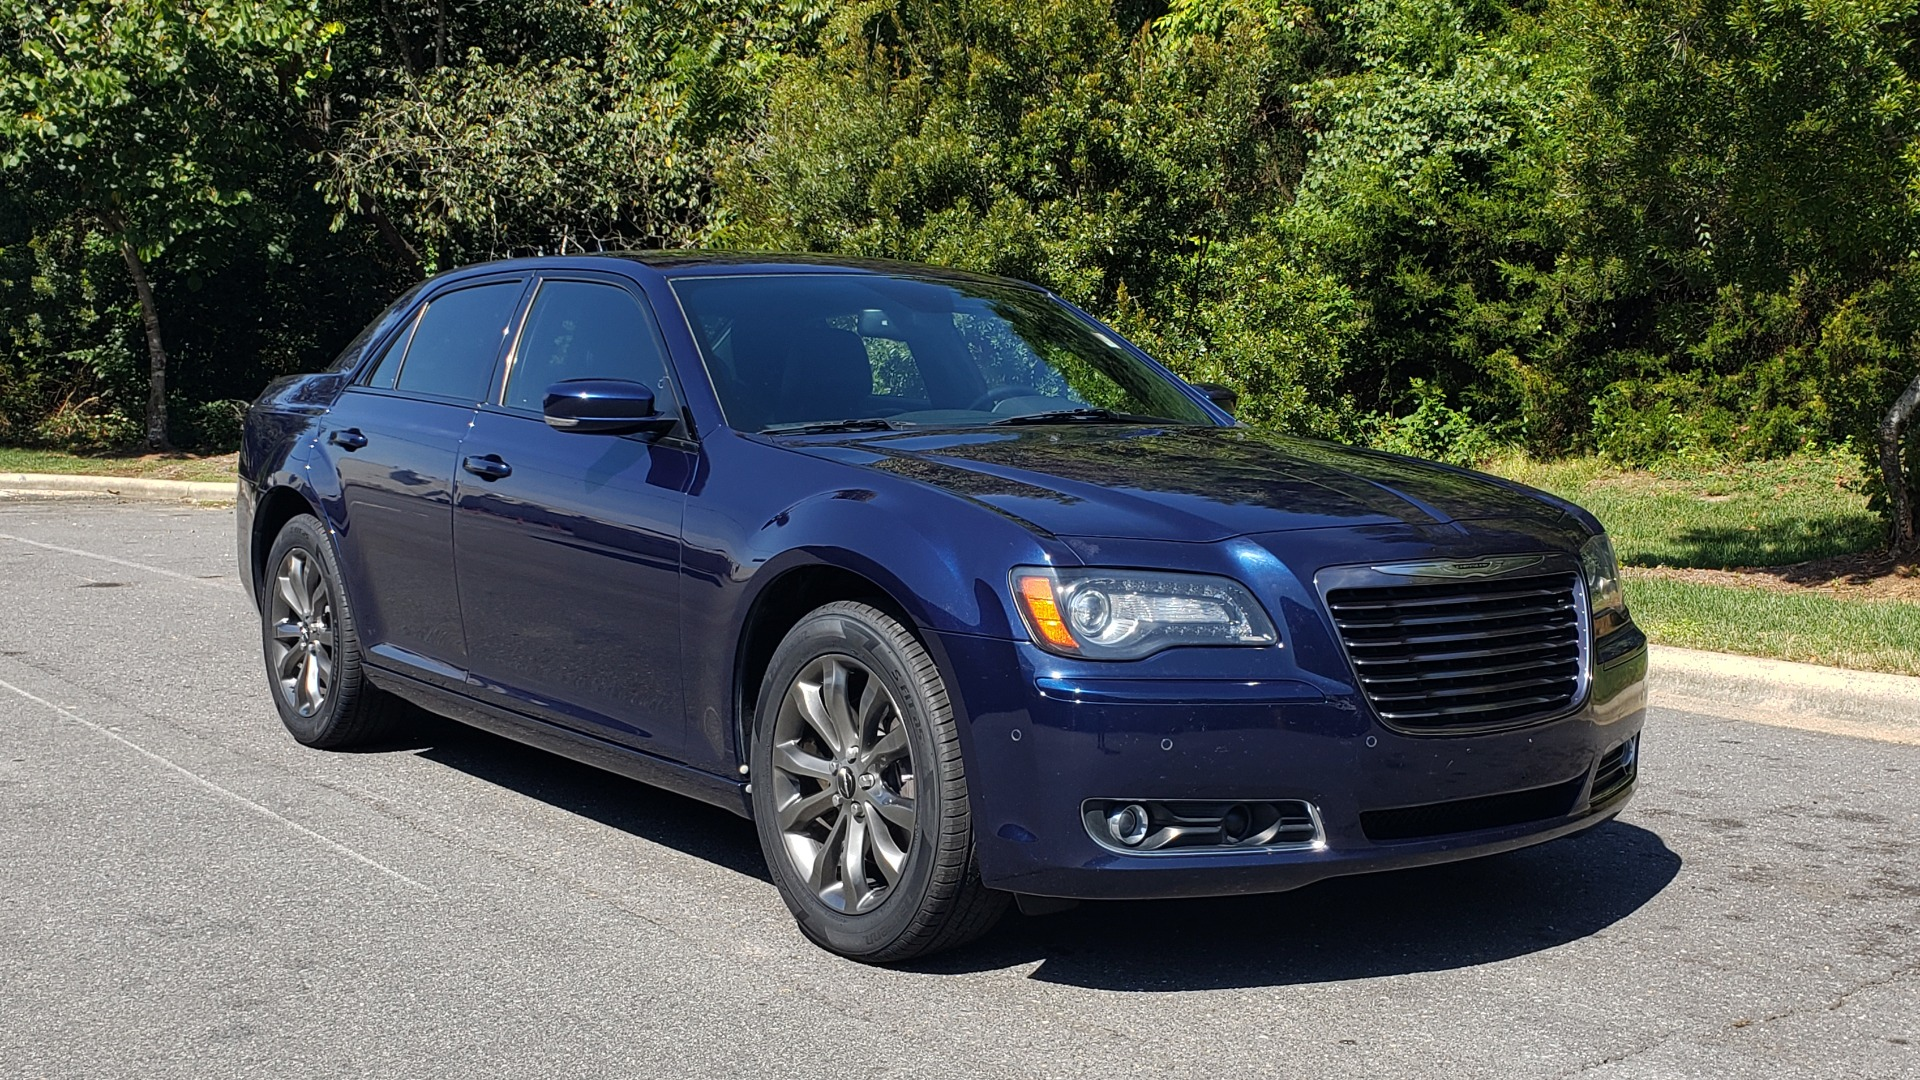 Used 2014 Chrysler 300 S AWD / SAFETY TEC / BLIND SPOT / LIGHT GRP / LUXURY GRP for sale $13,995 at Formula Imports in Charlotte NC 28227 6